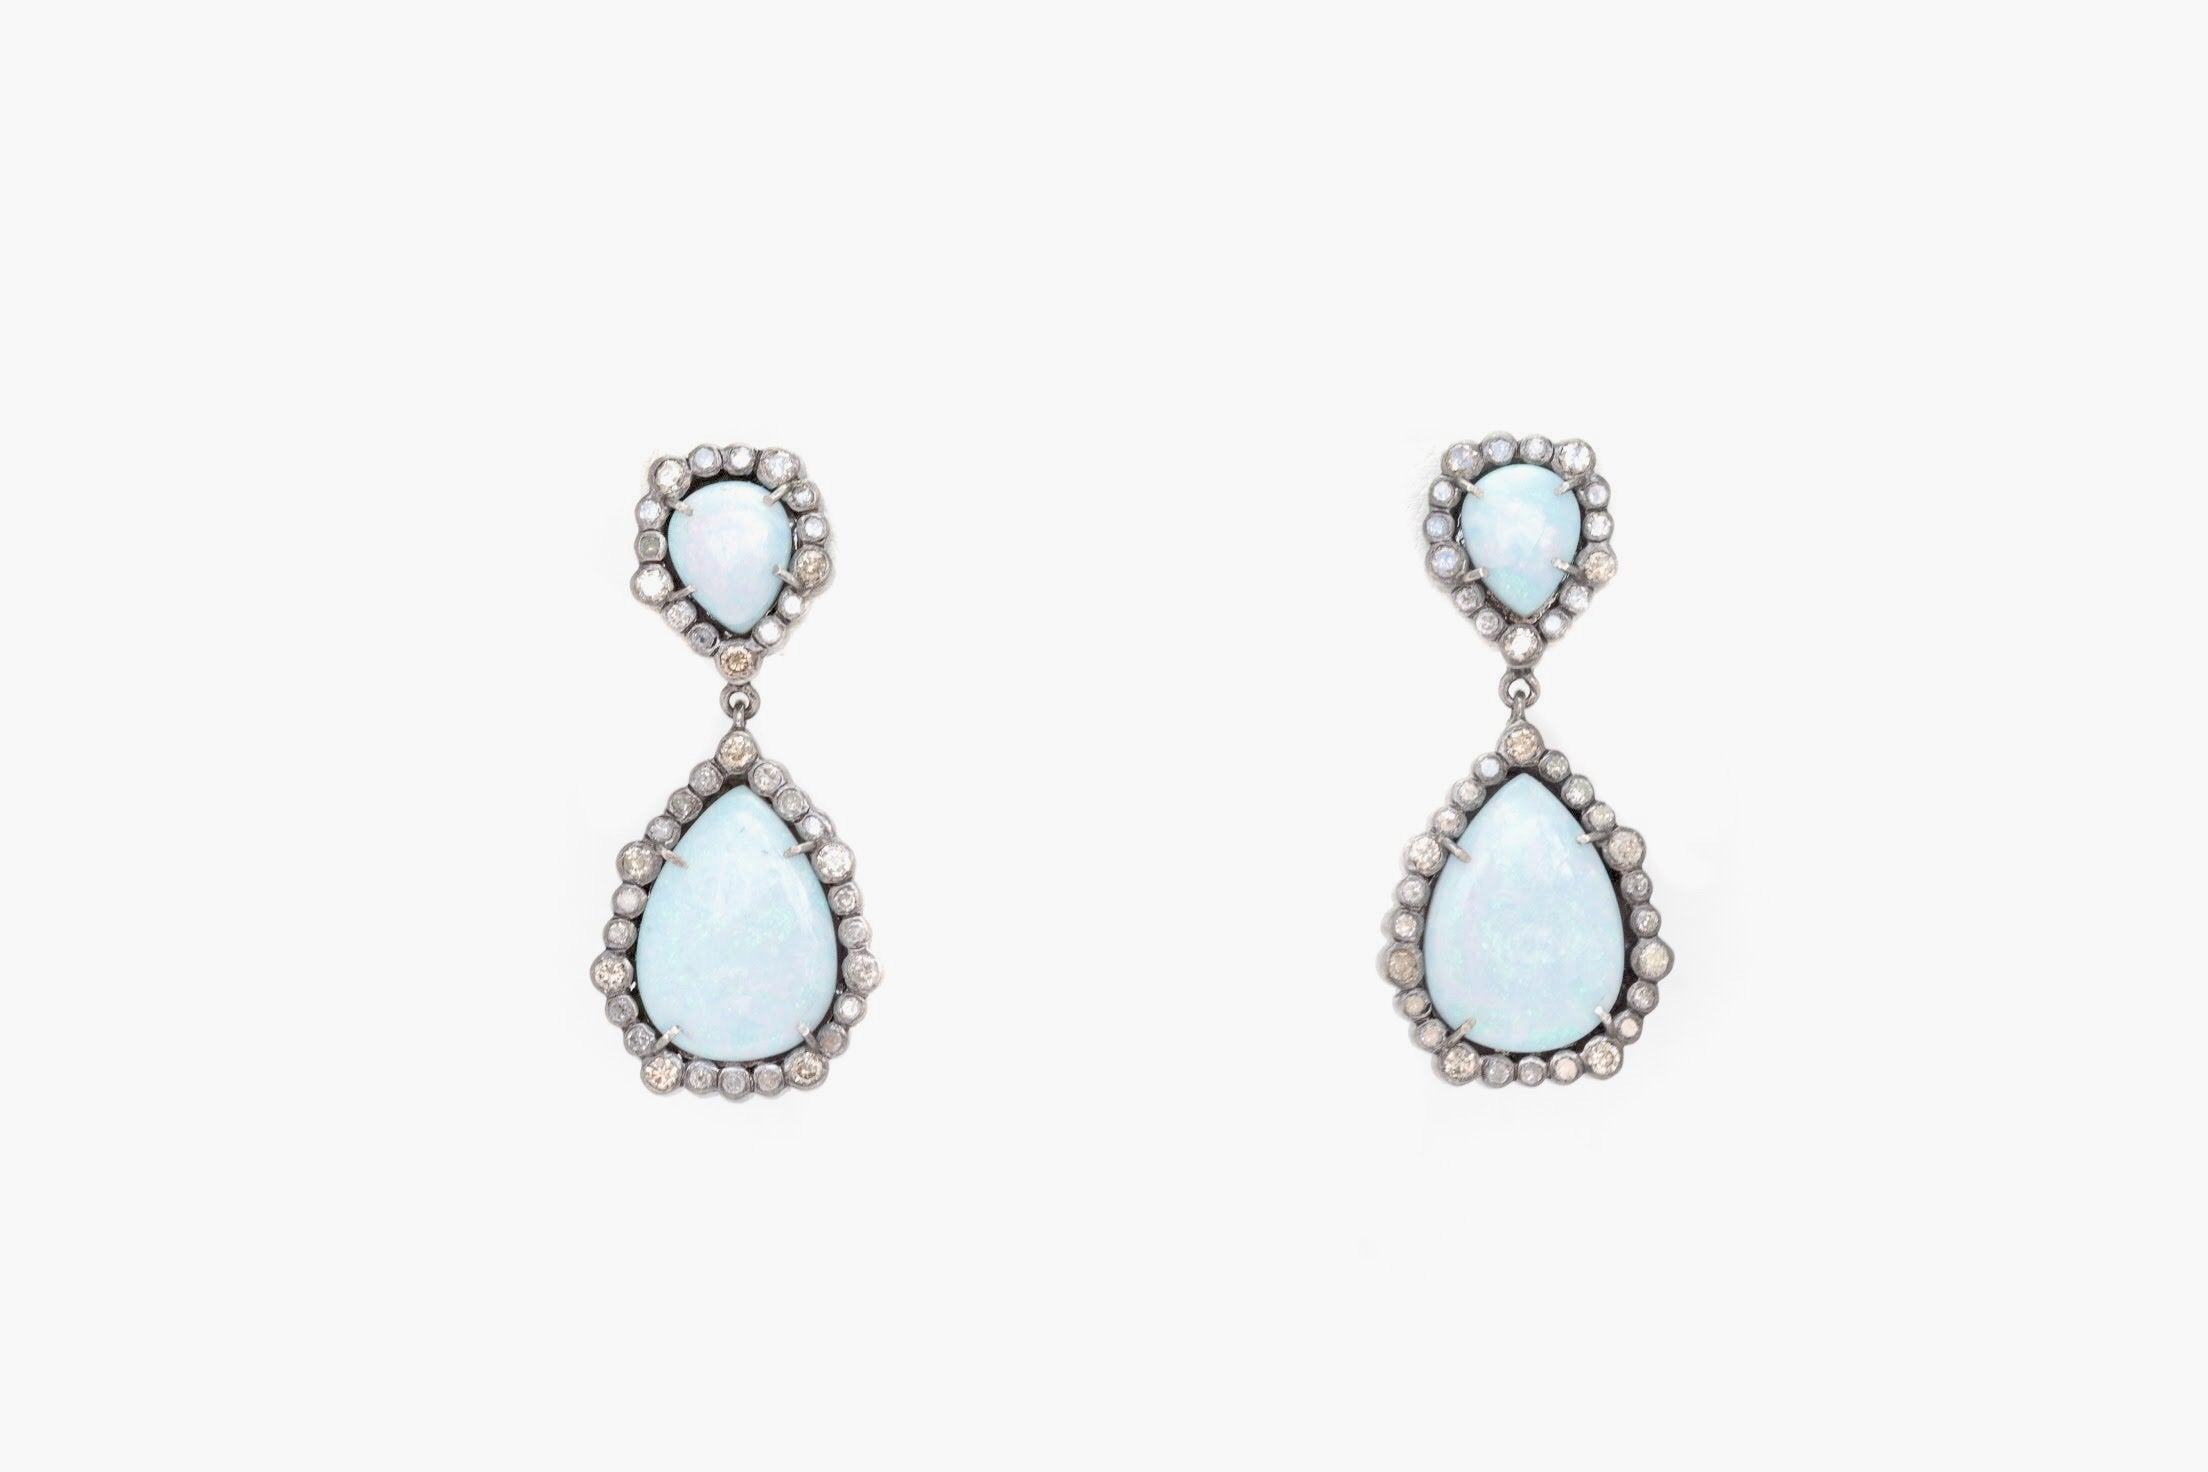 S.Row Designs Opal and Diamond Earrings